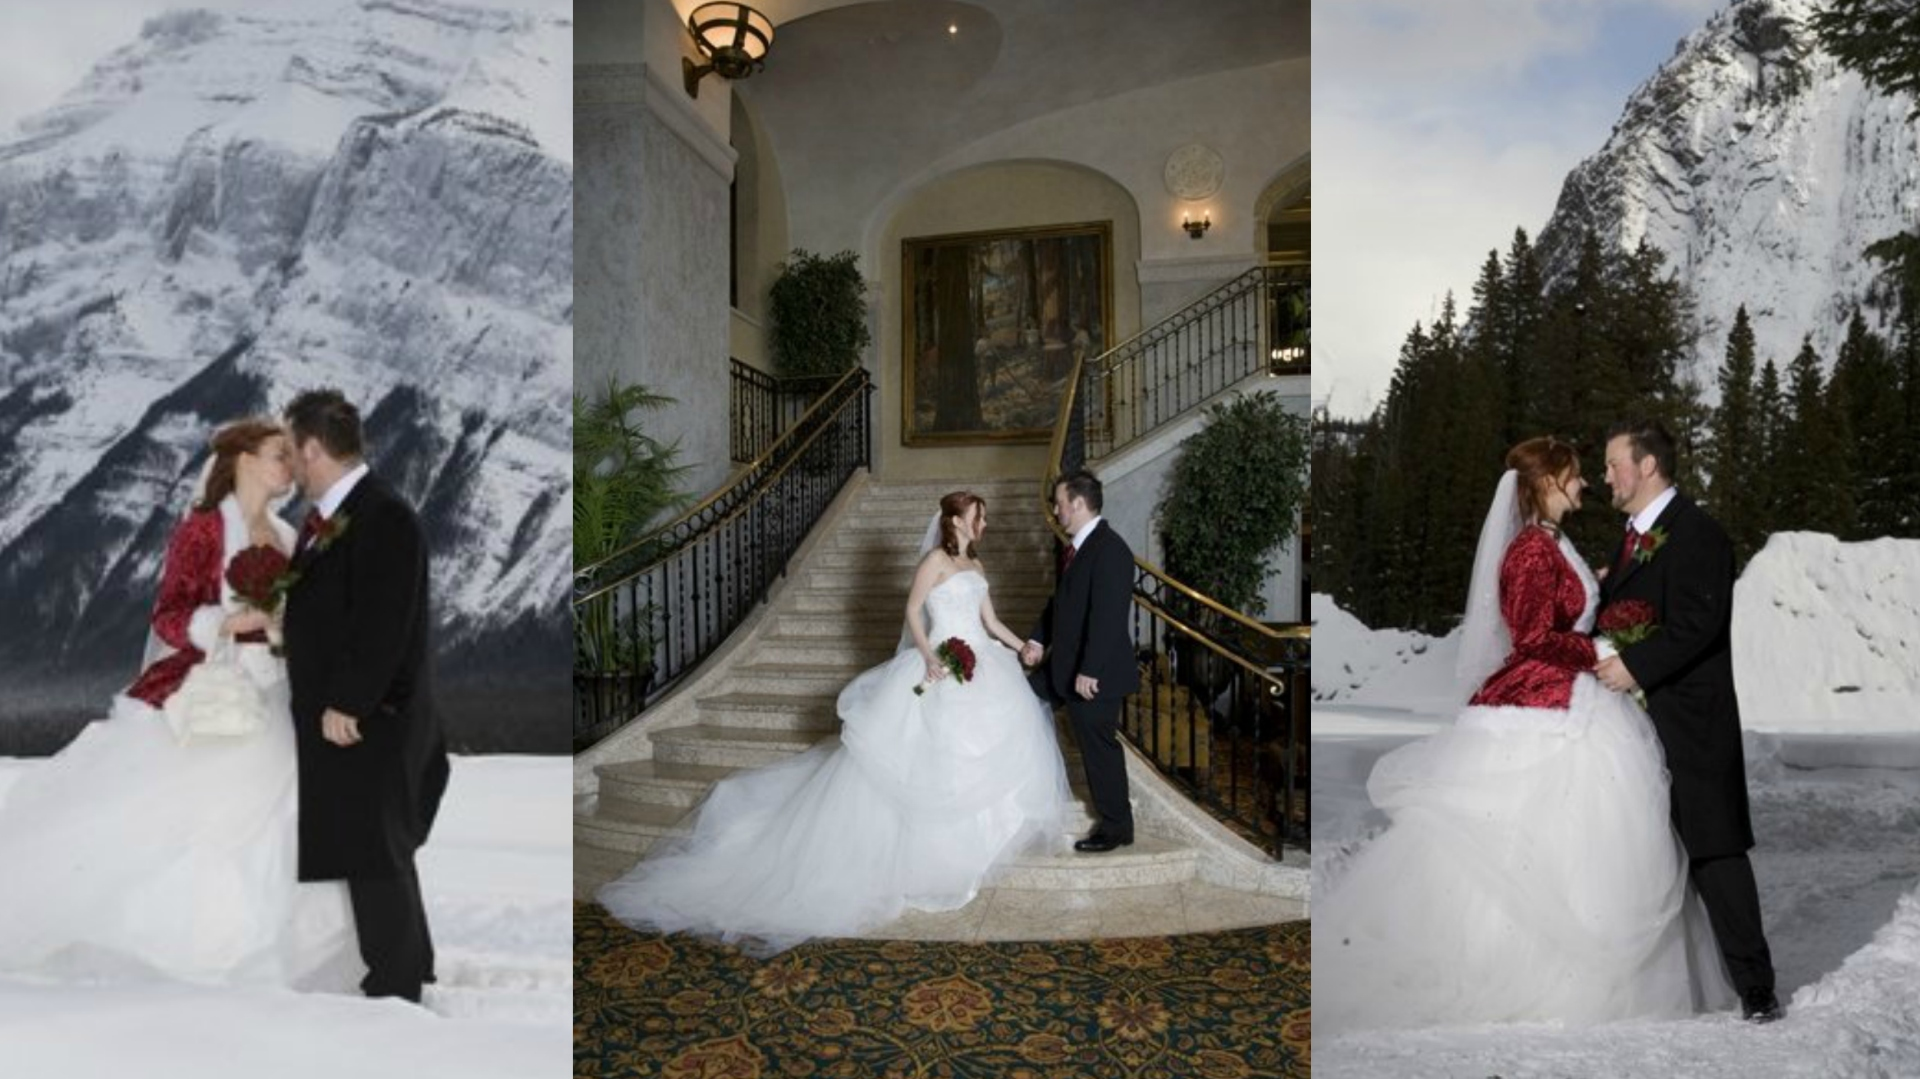 renewing vows and getting married in Banff Canada in the snow